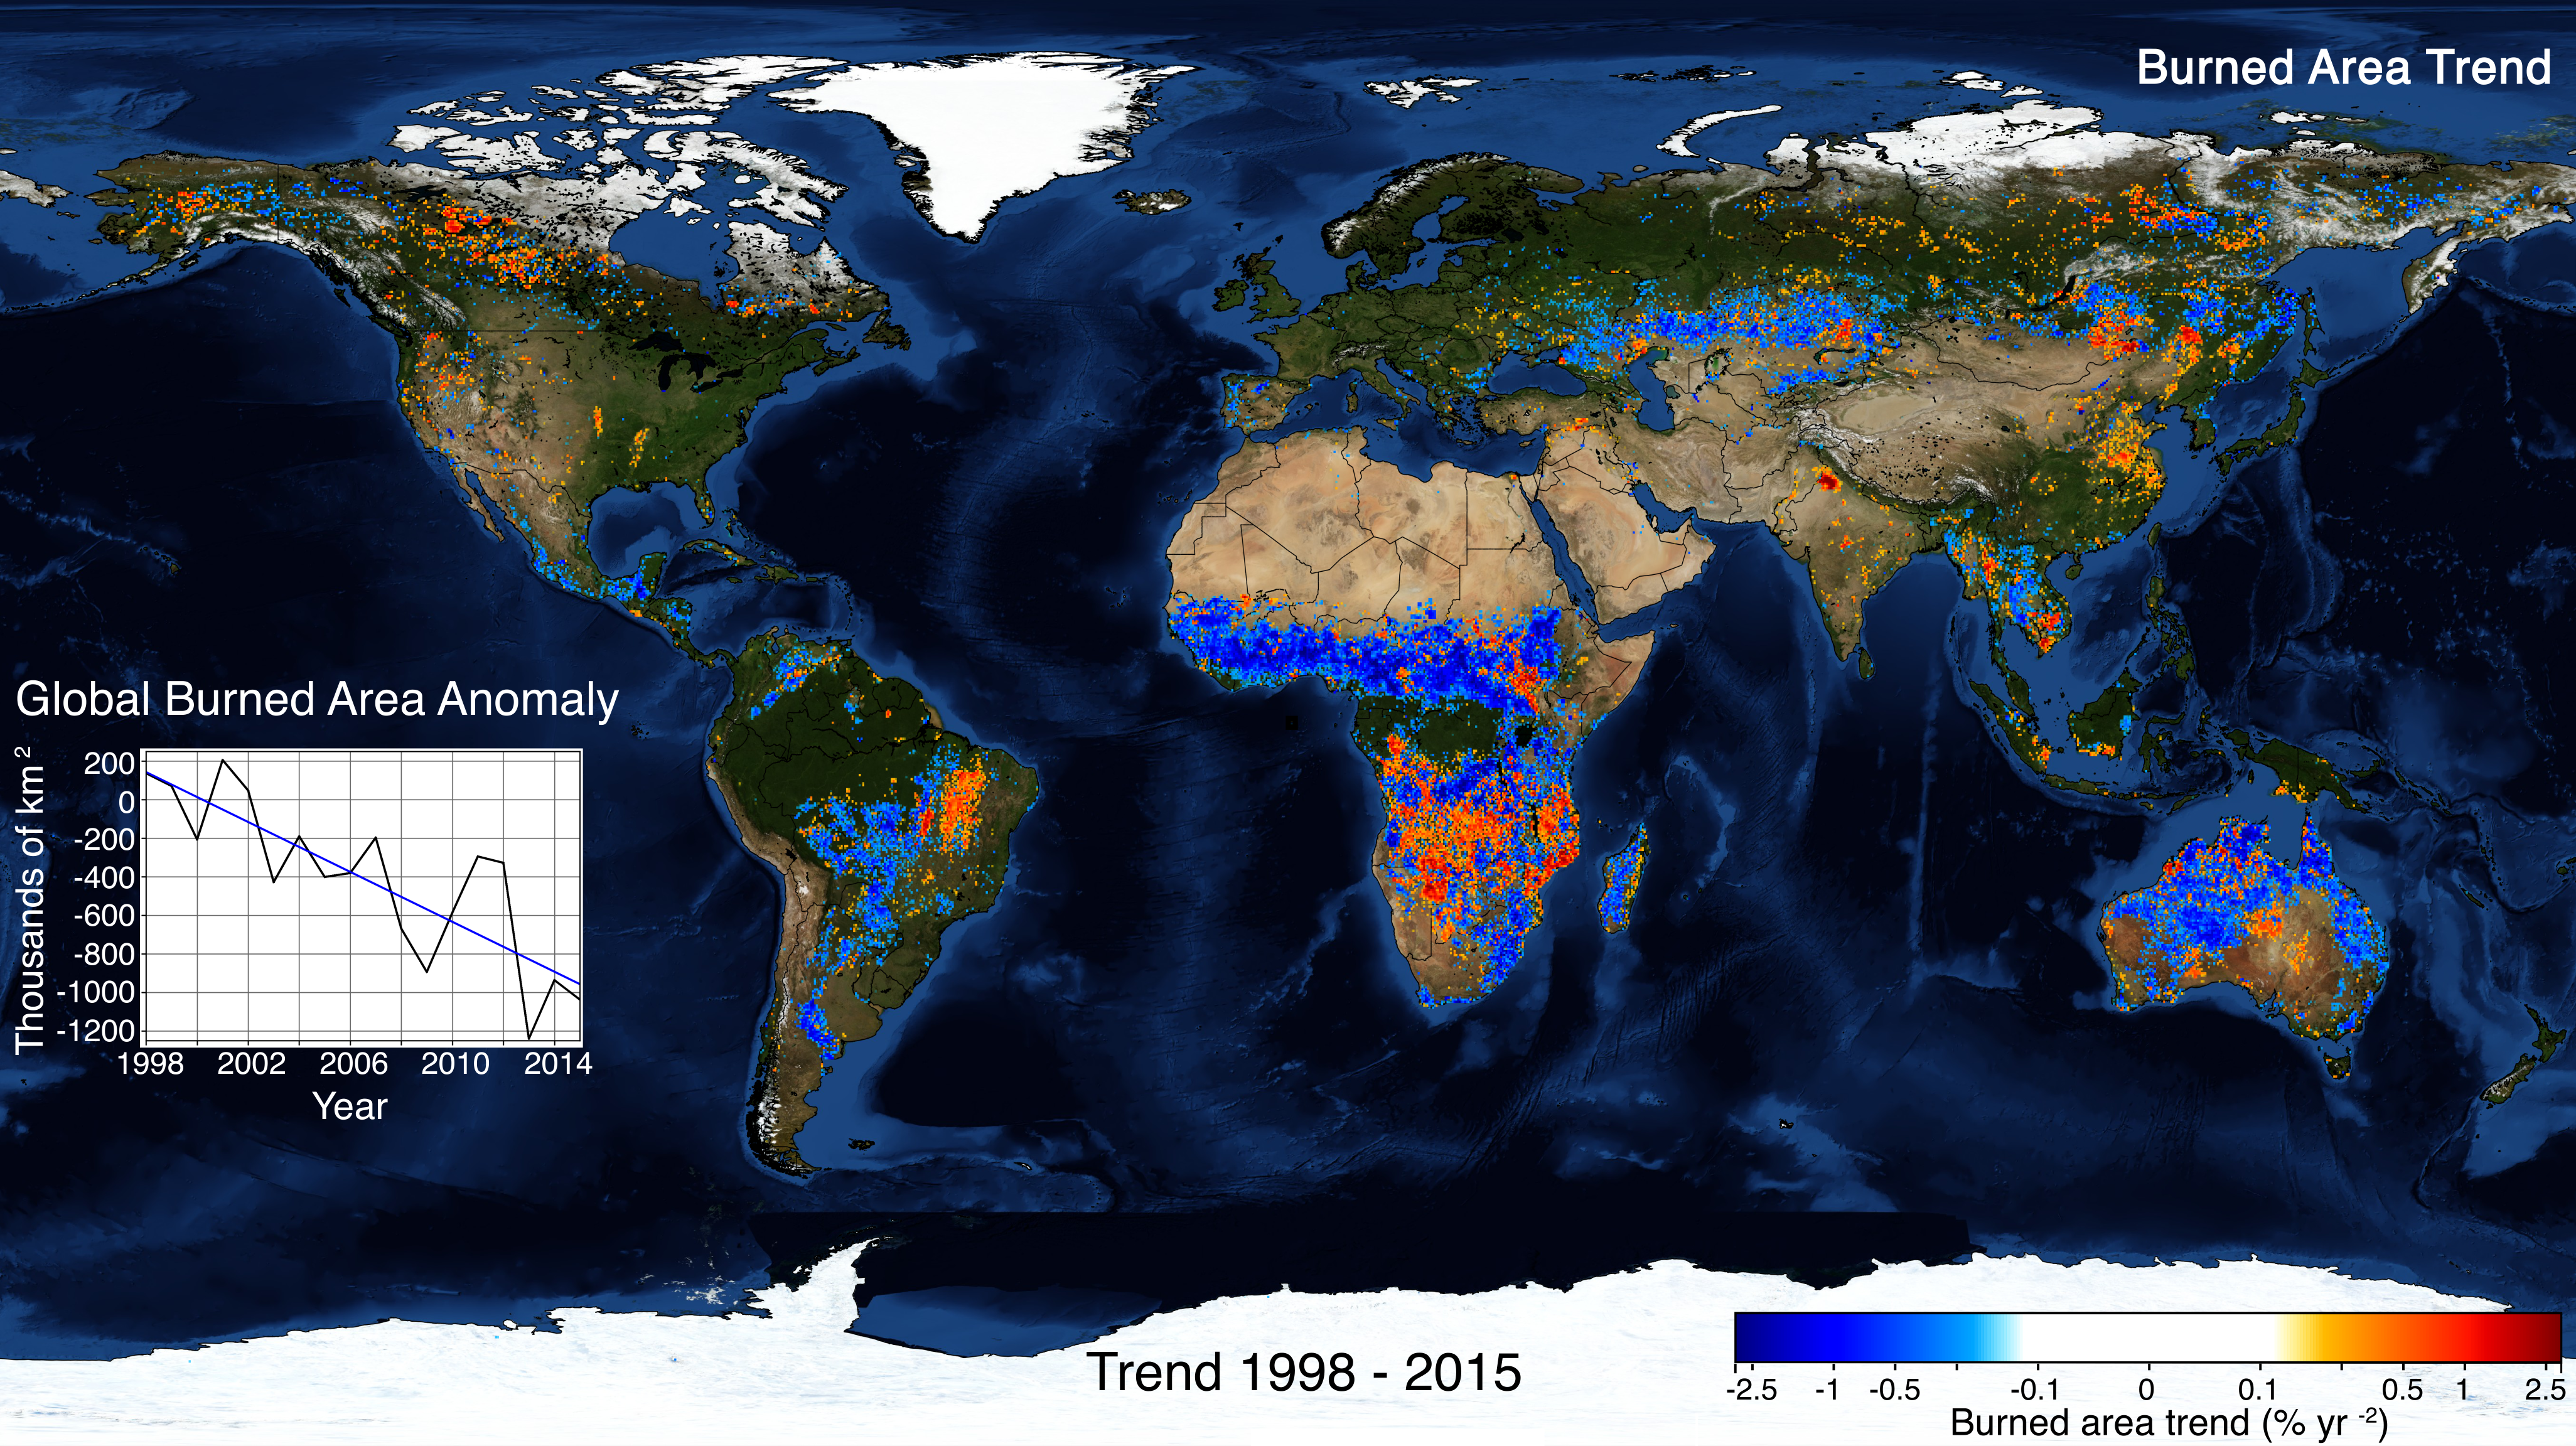 Global burned area trends from Andela et al. (2017) published in Science